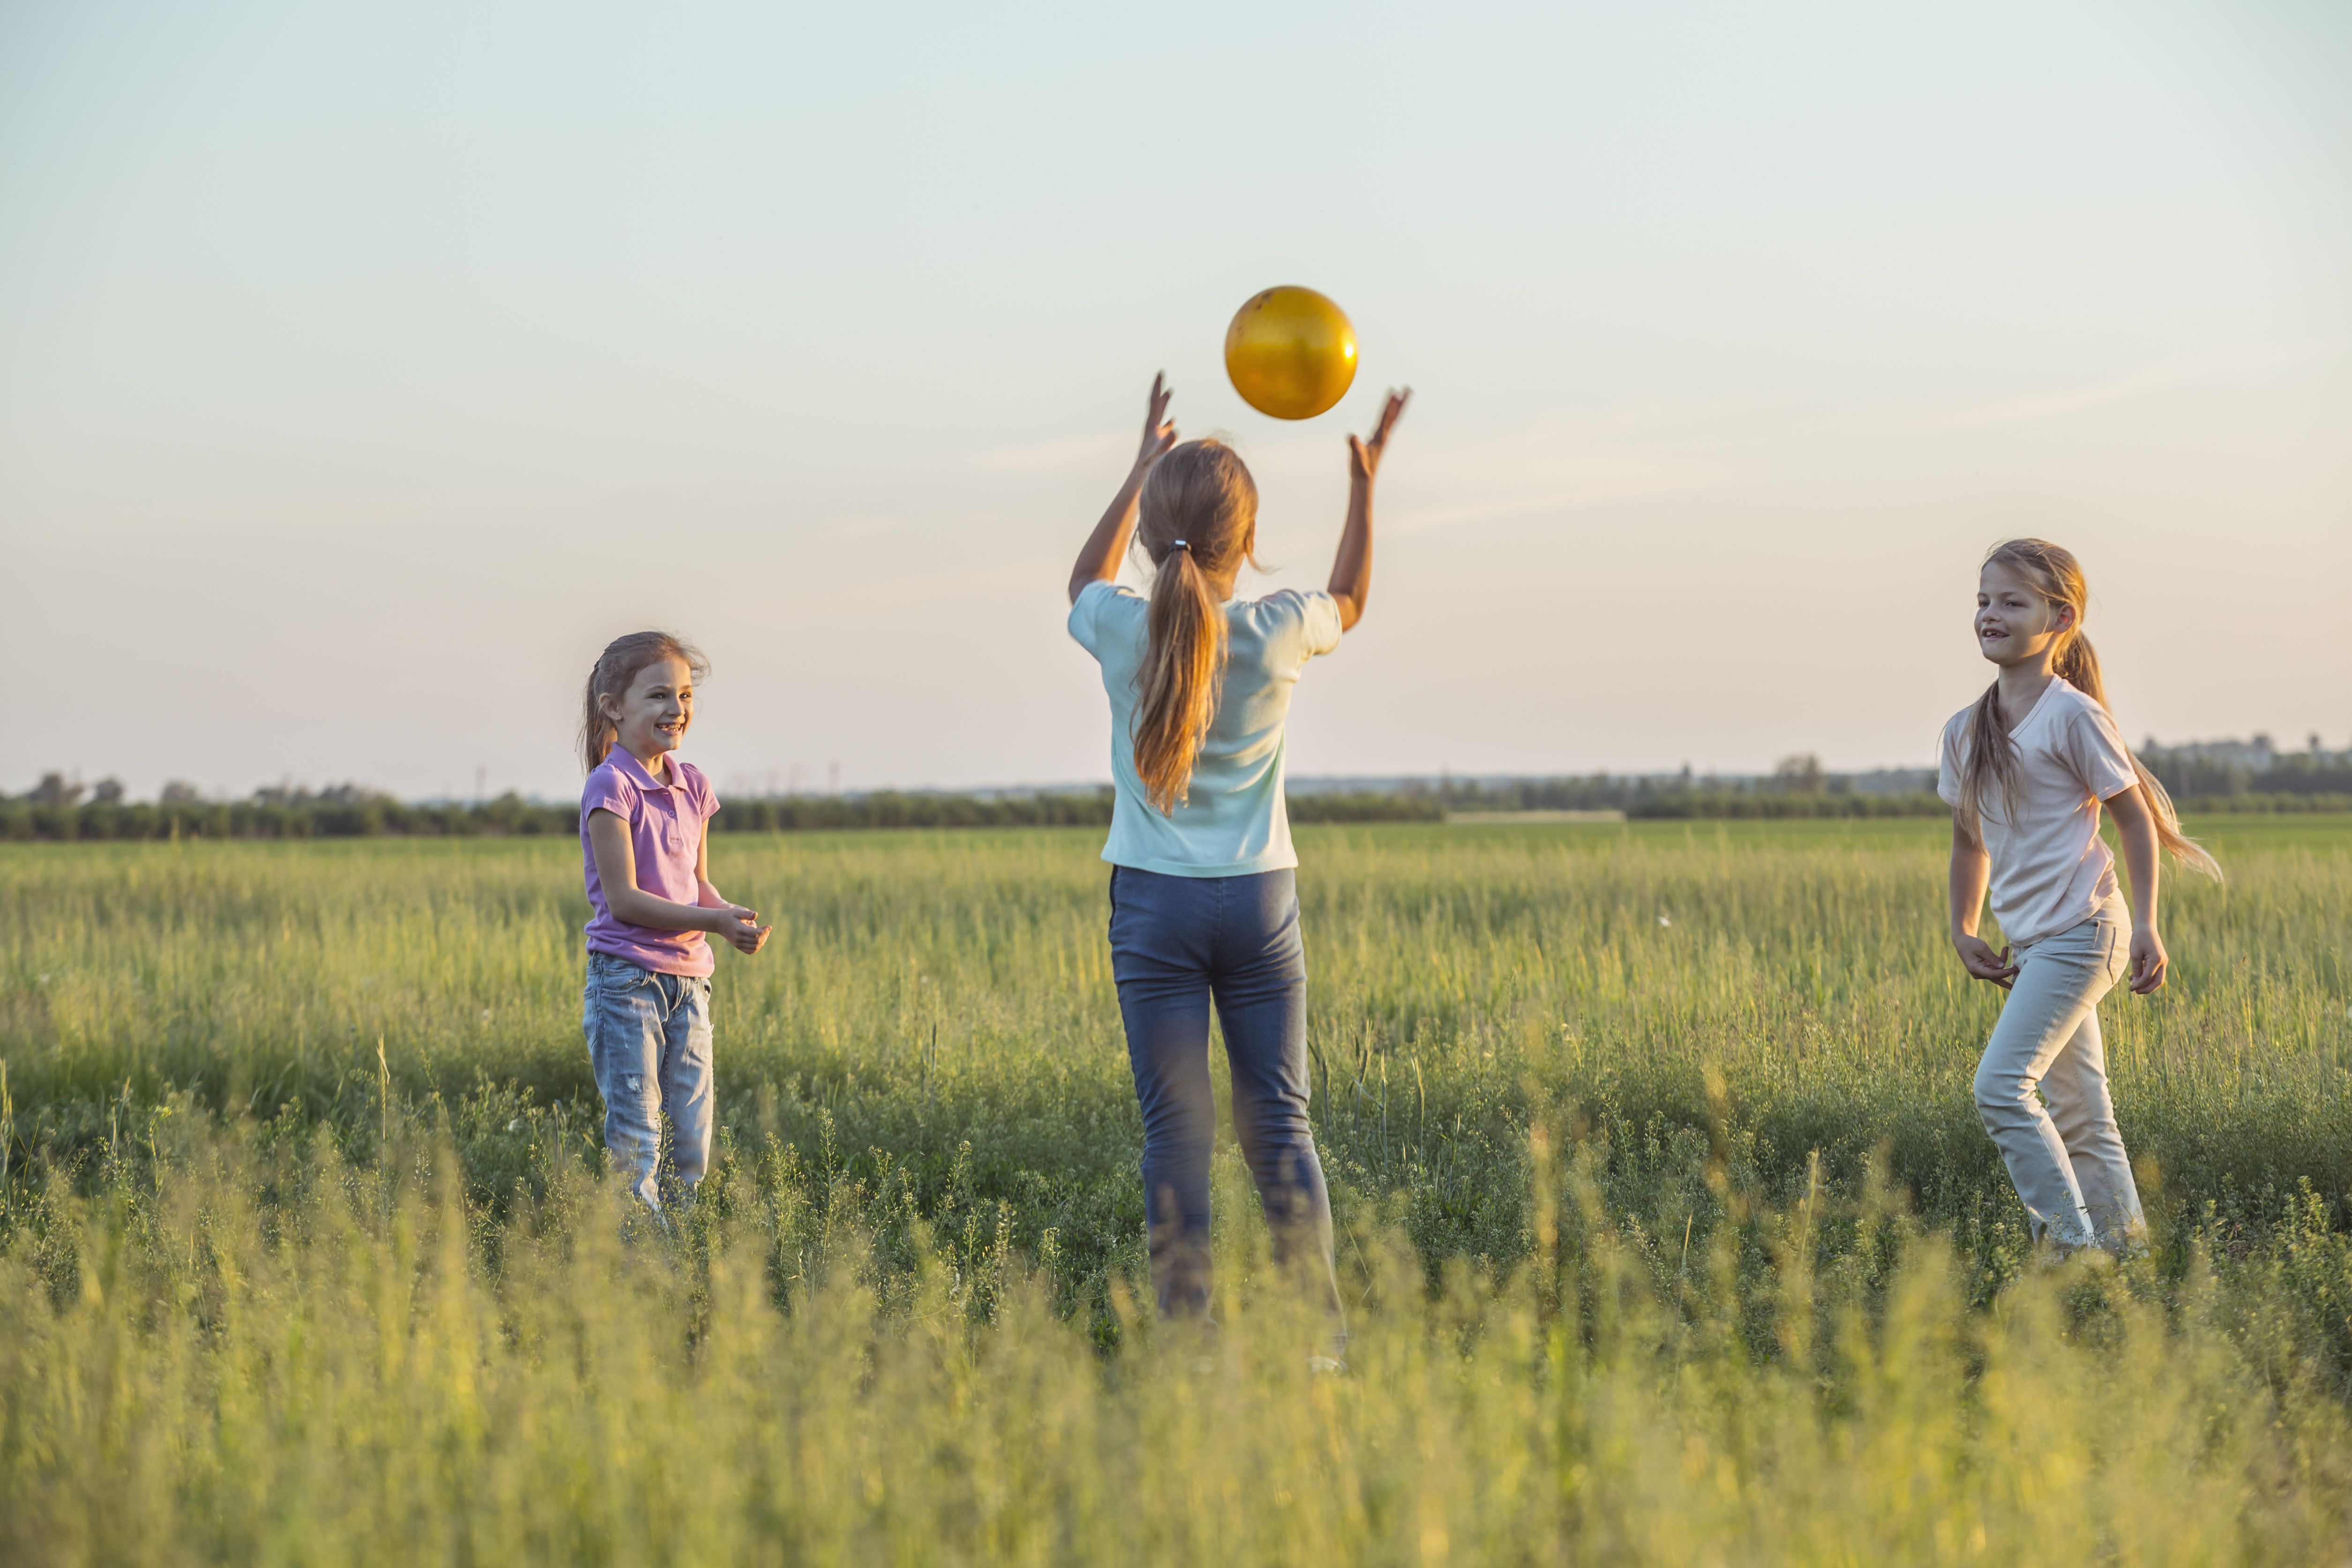 Three young girls playing catch in a sunny field in summer